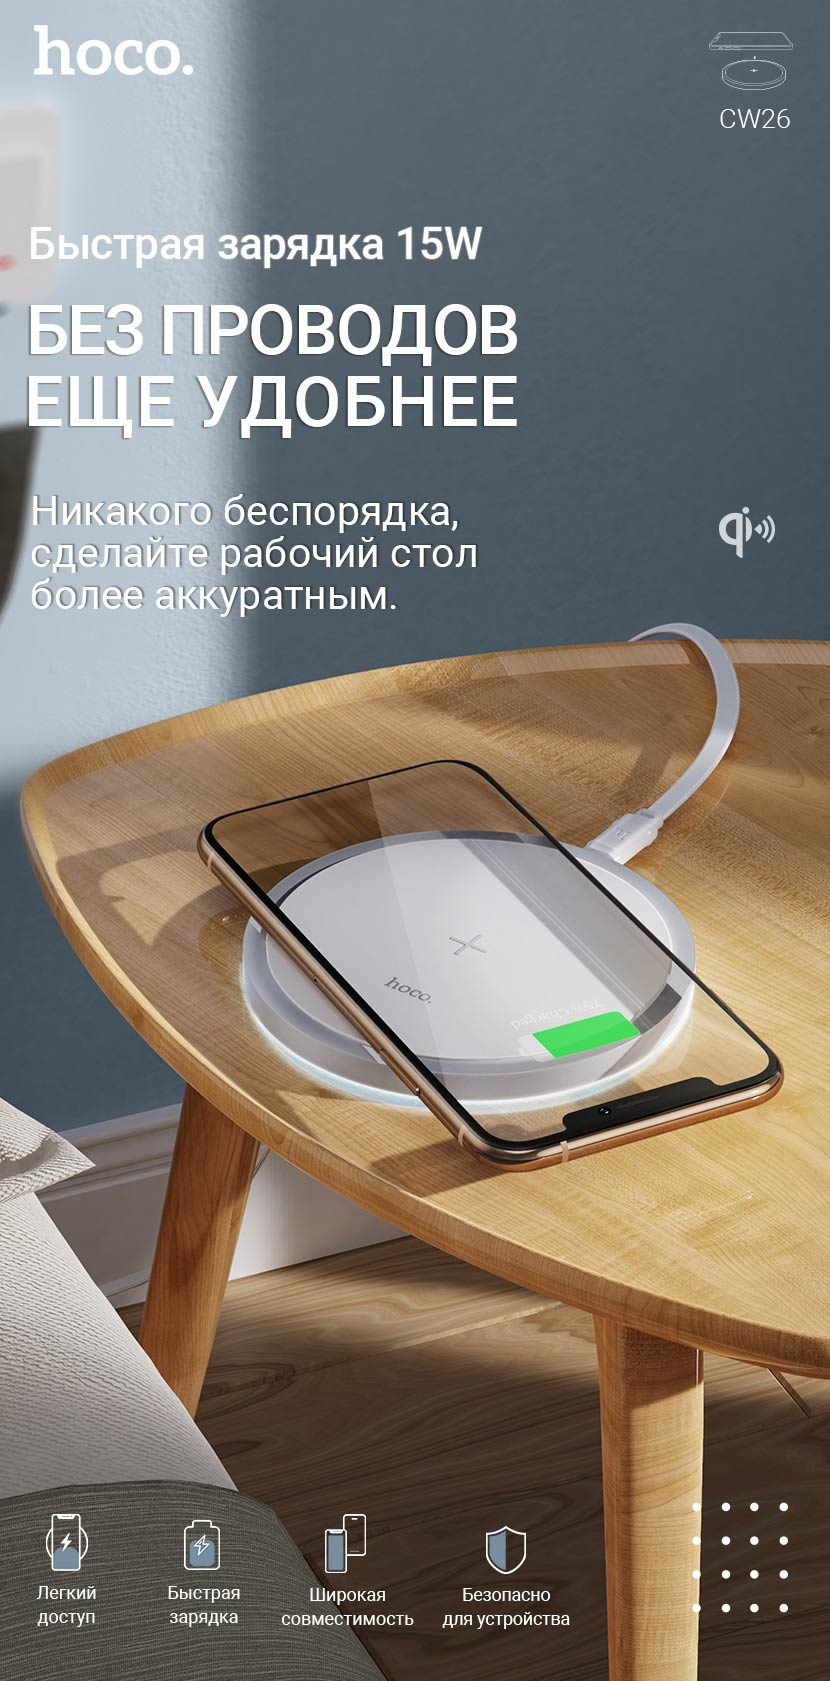 hoco news cw26 powerful 15w wireless fast charger without wires ru